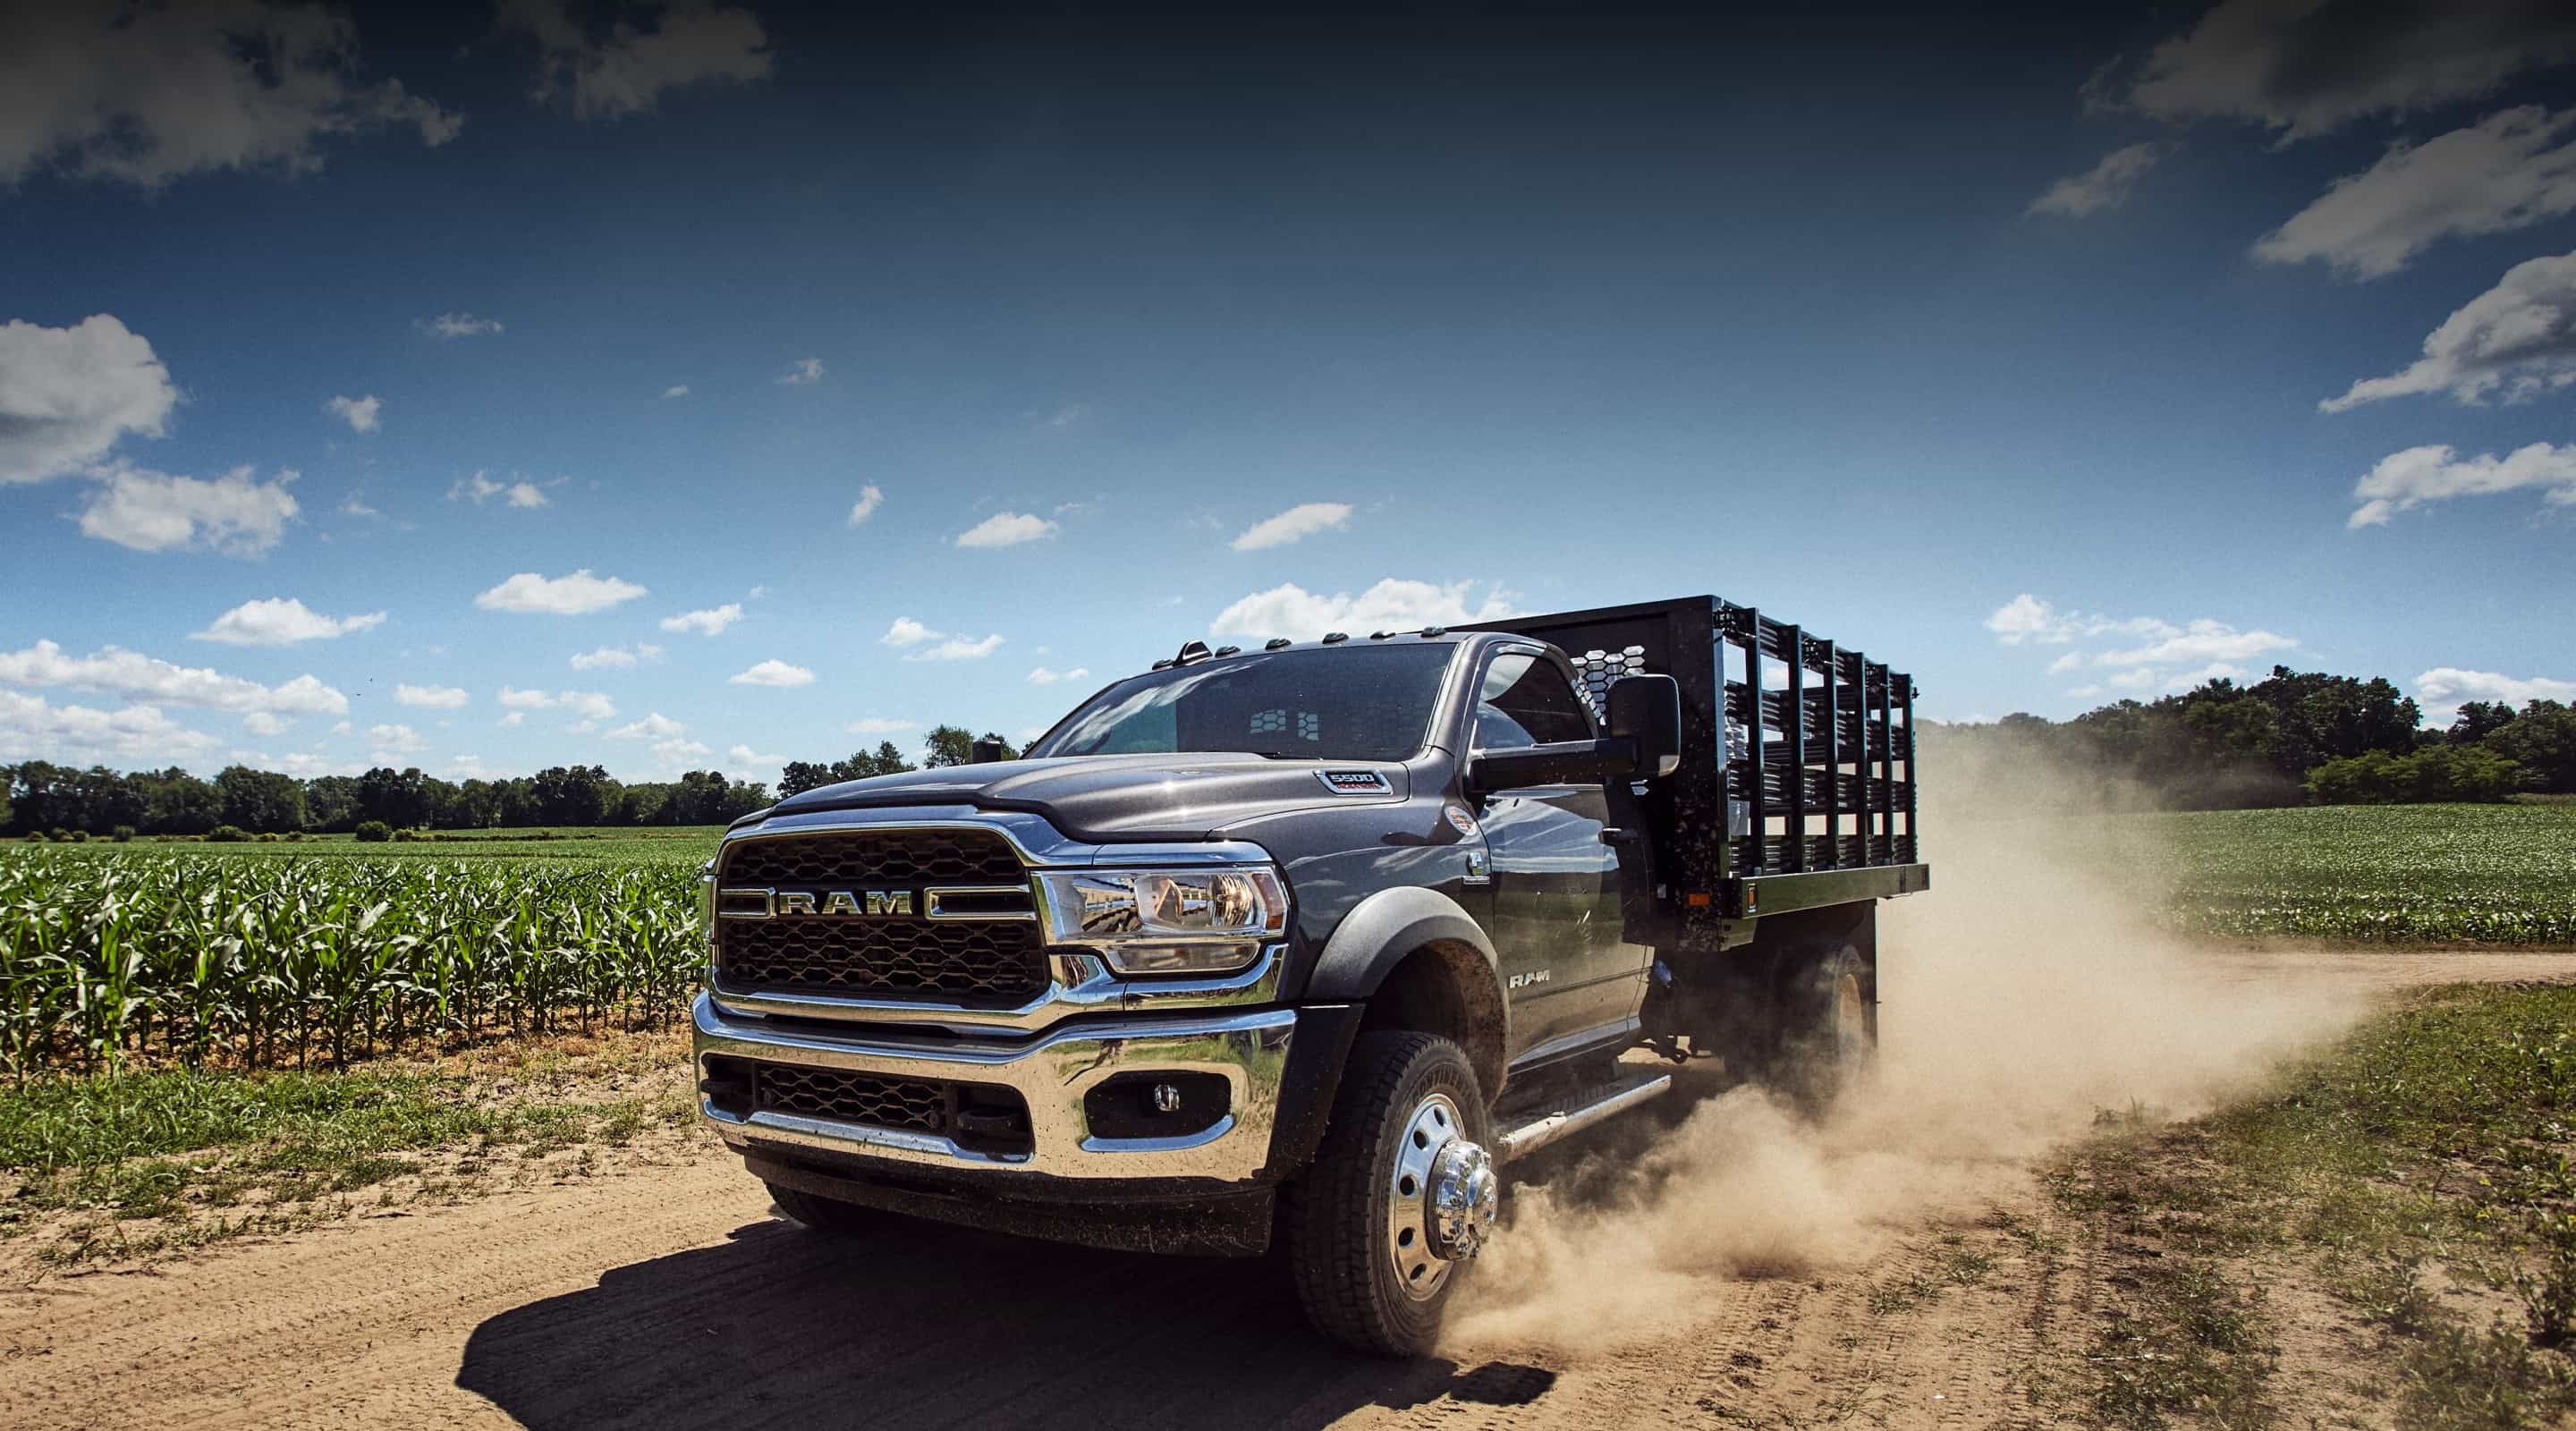 A grey Ram 4500 Chassis Cab with rancher upfit drives briskly down a rural dirt road.